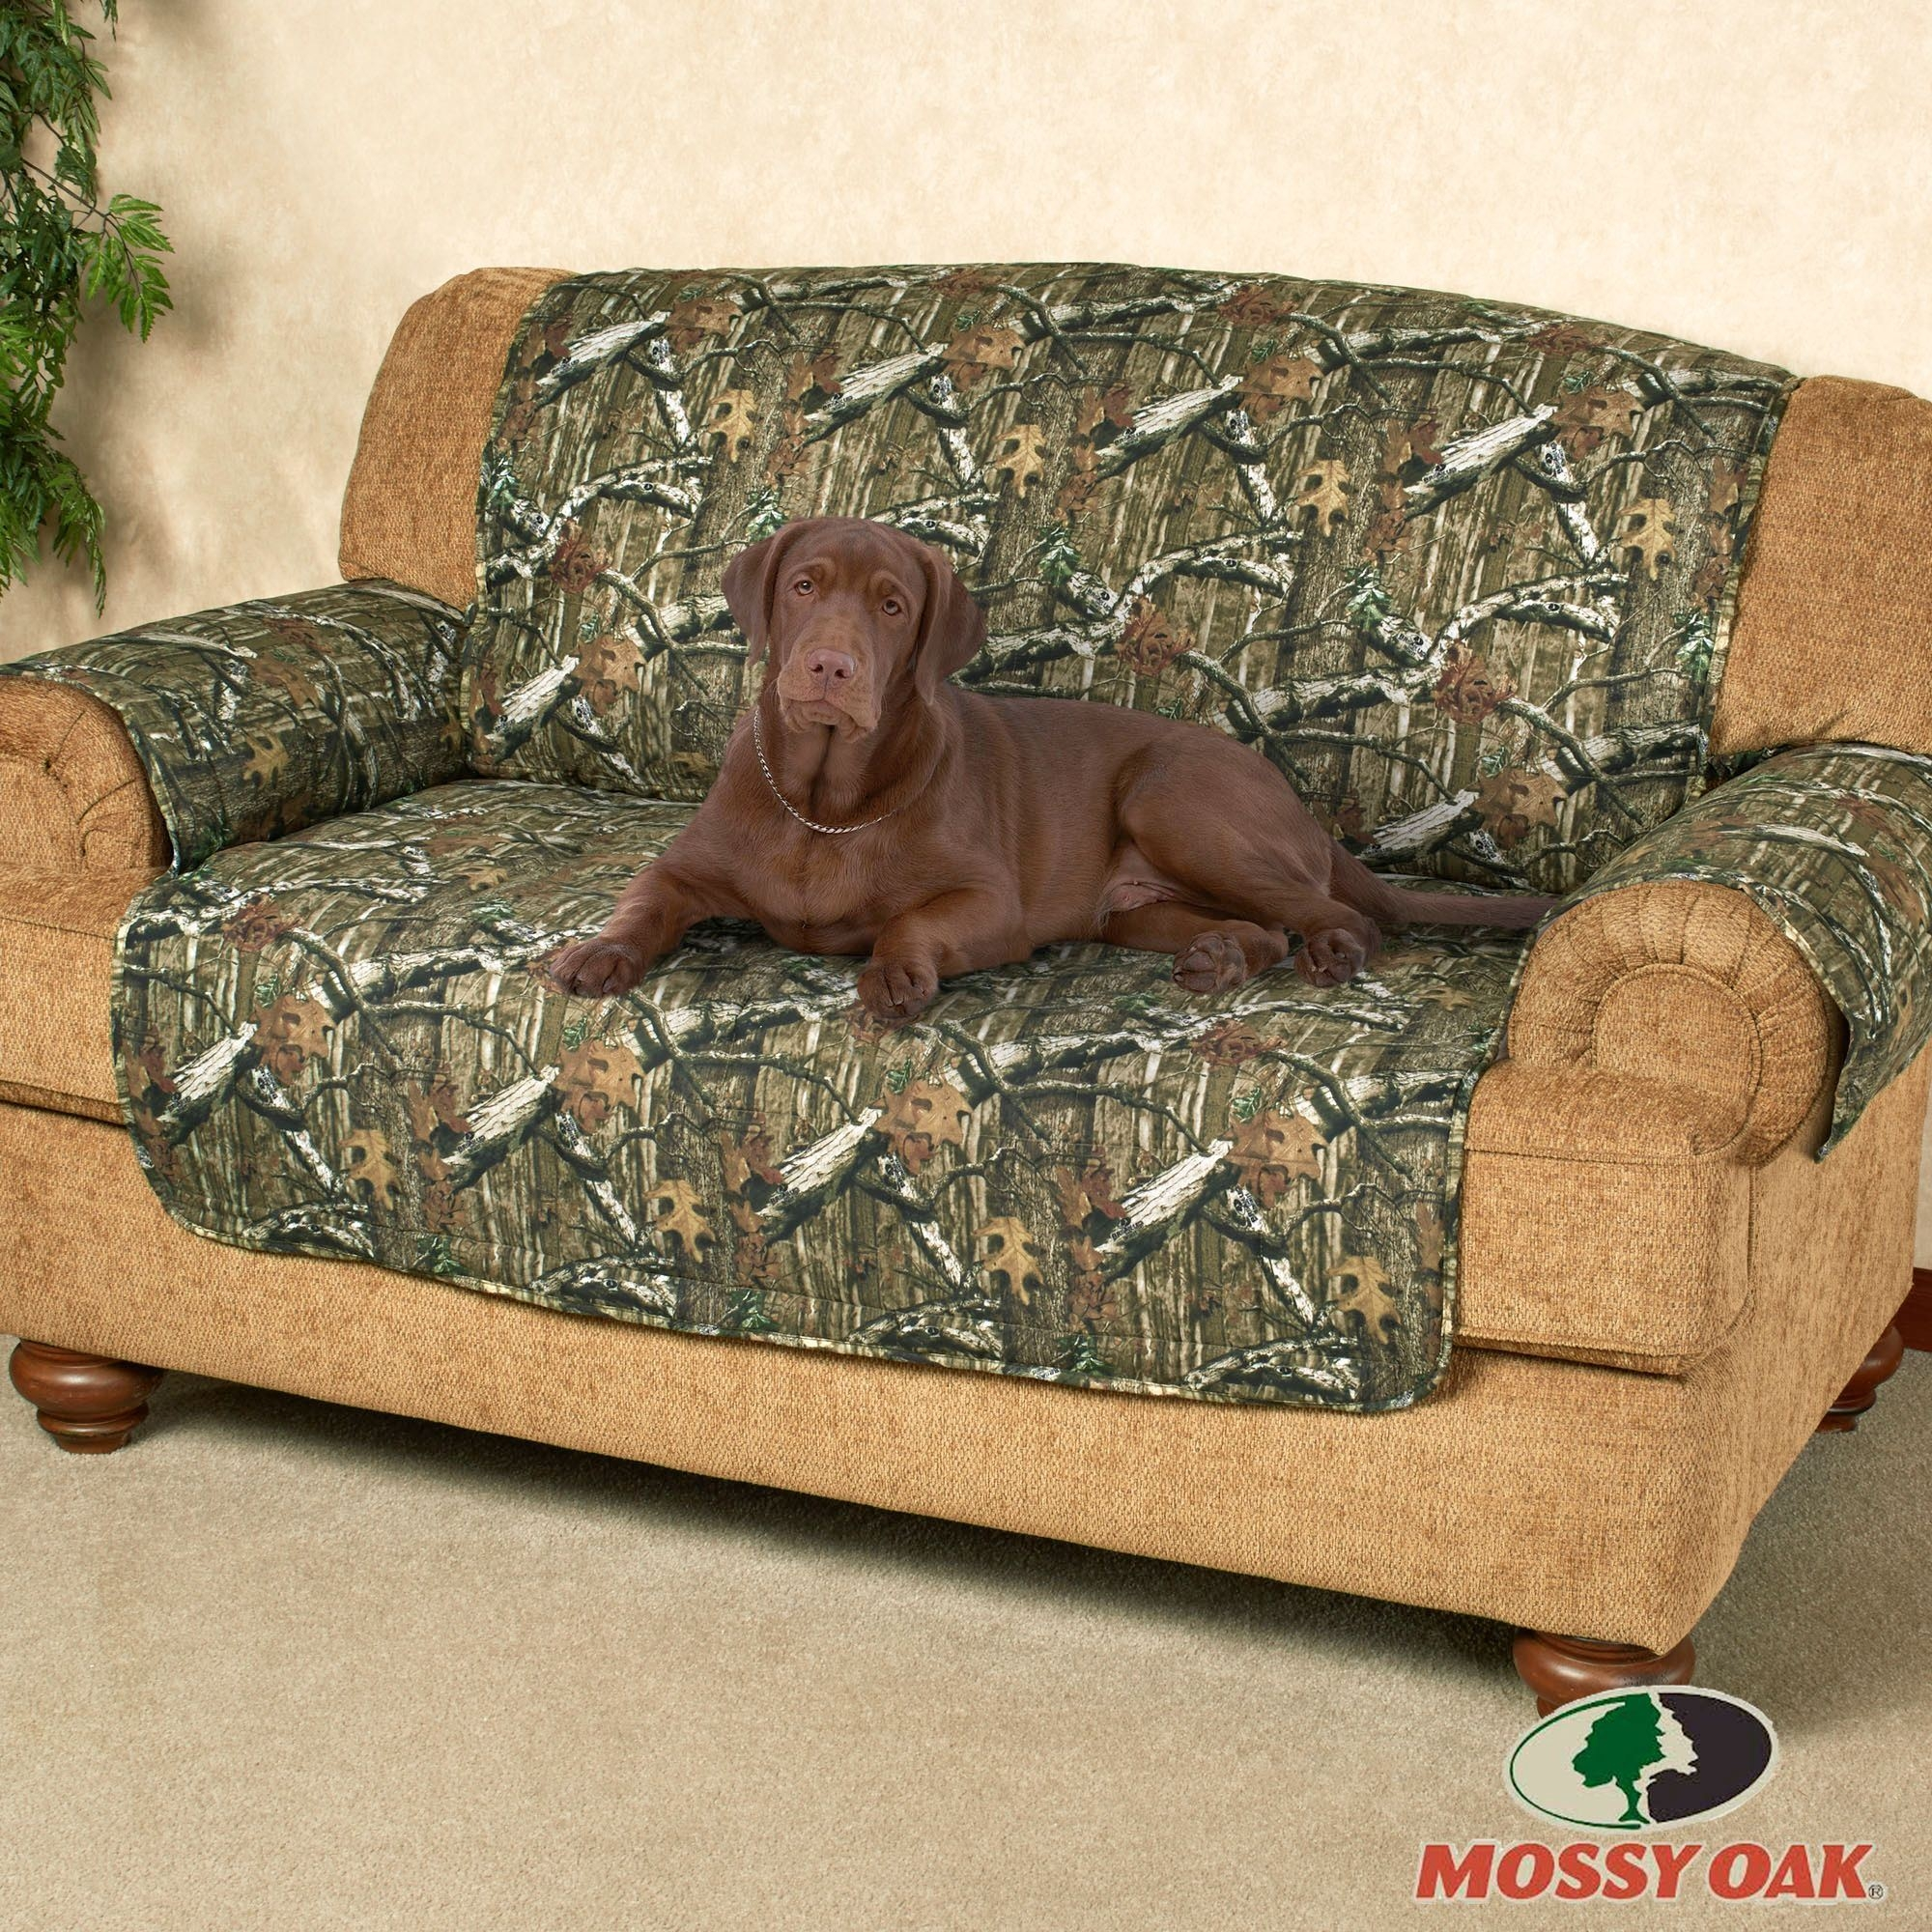 Mossy Oak Break Up Infinity Camo Furniture Protectors Intended For Camo Sofa Cover (Image 8 of 15)